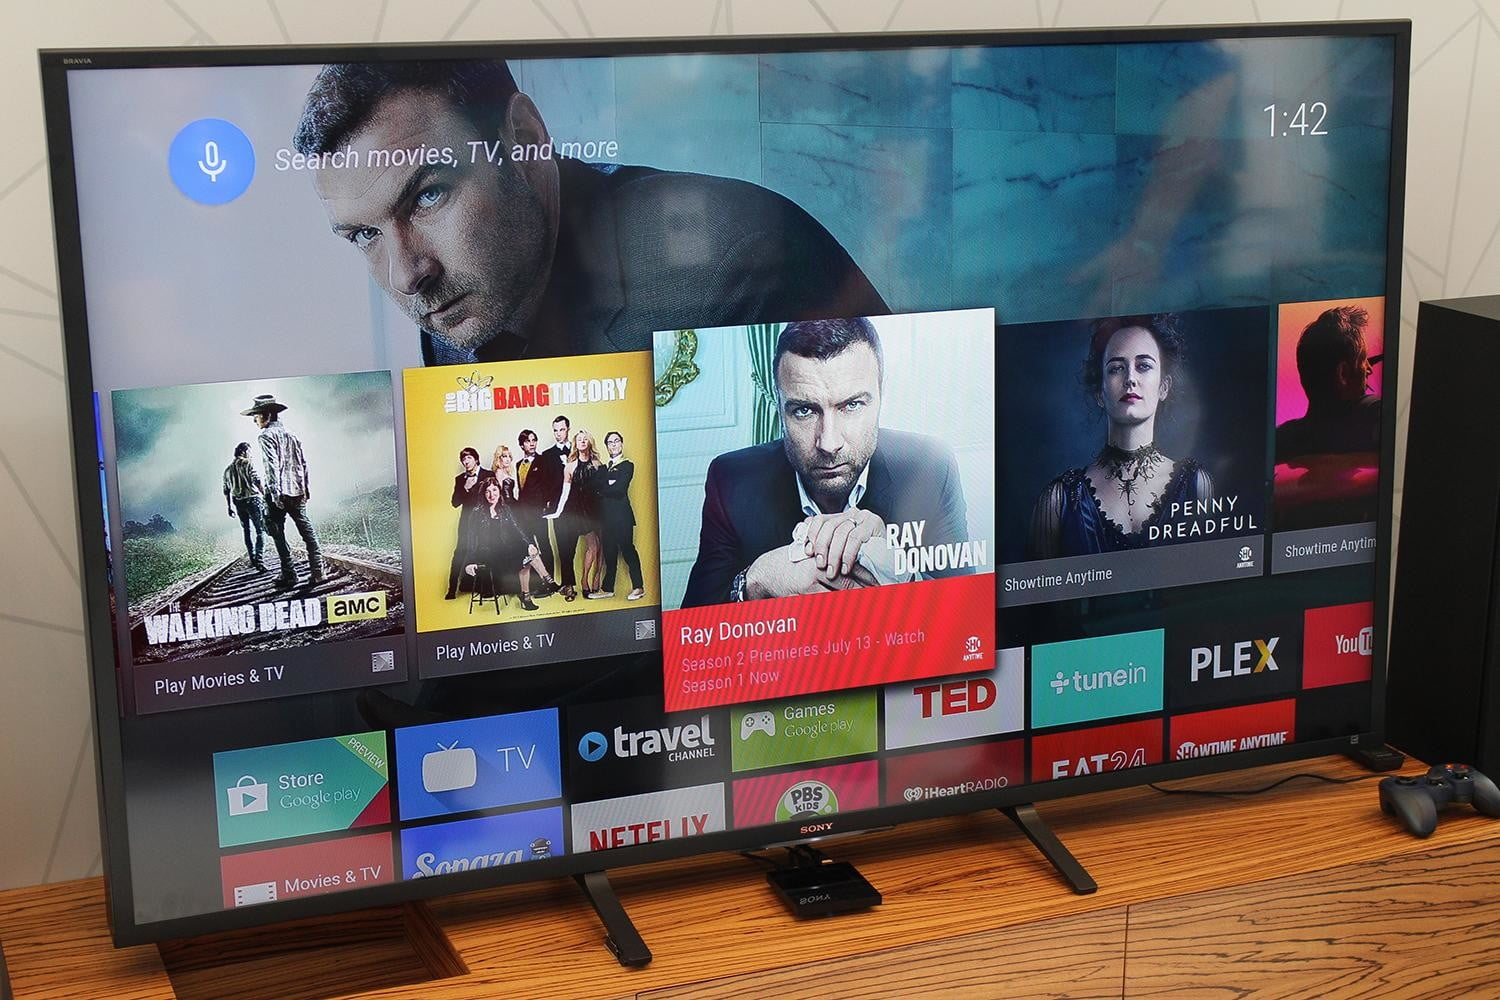 Android TV Channels Mixes Live TV and Streaming Apps | Digital Trends